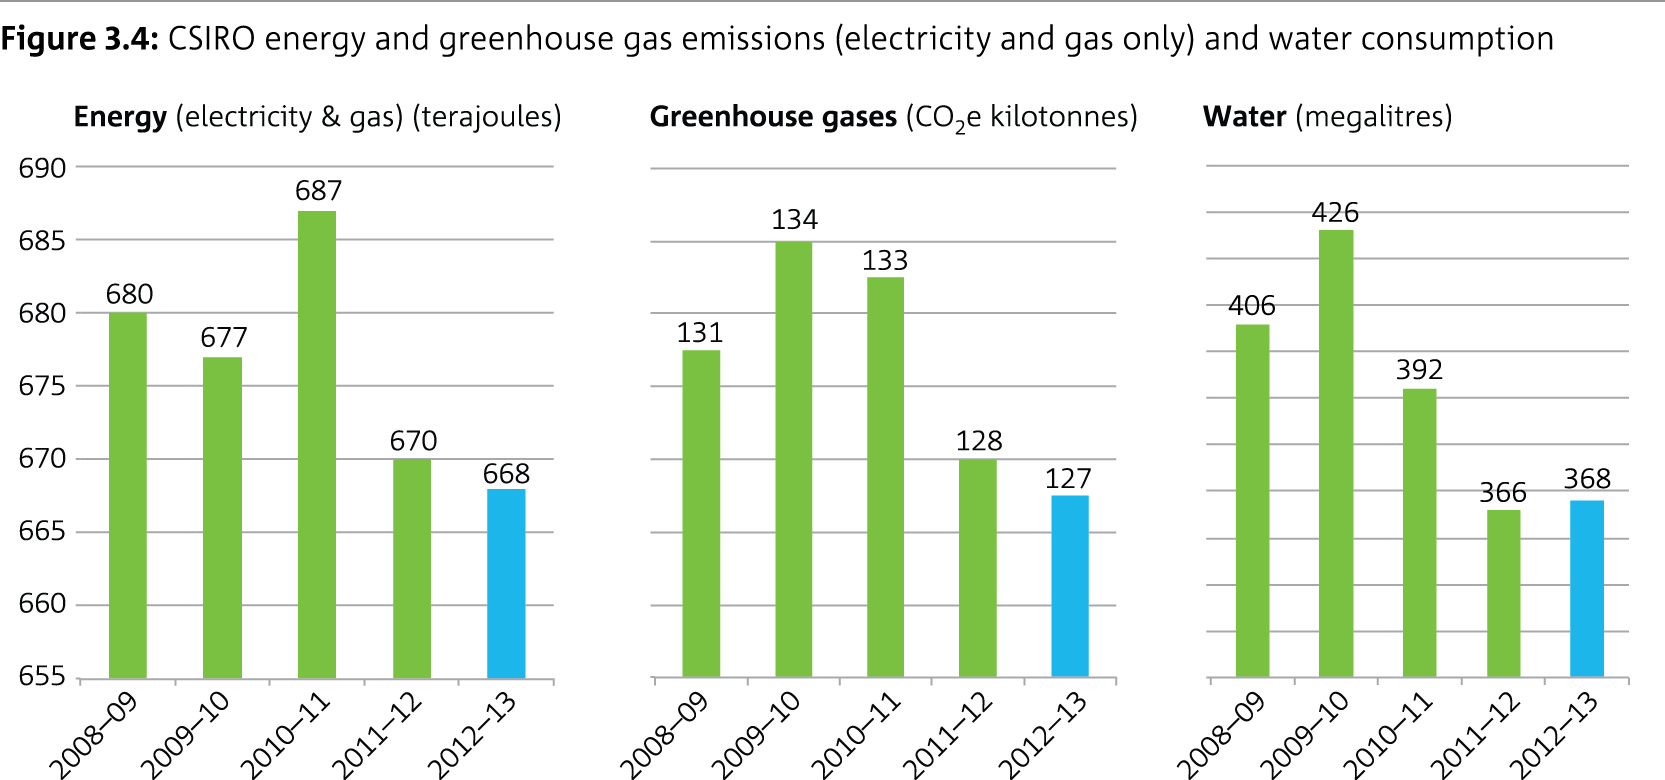 Three colum graphs showing CSIRO's energy and greenhouse gas emissions (electricity and gas only) and water consumption.